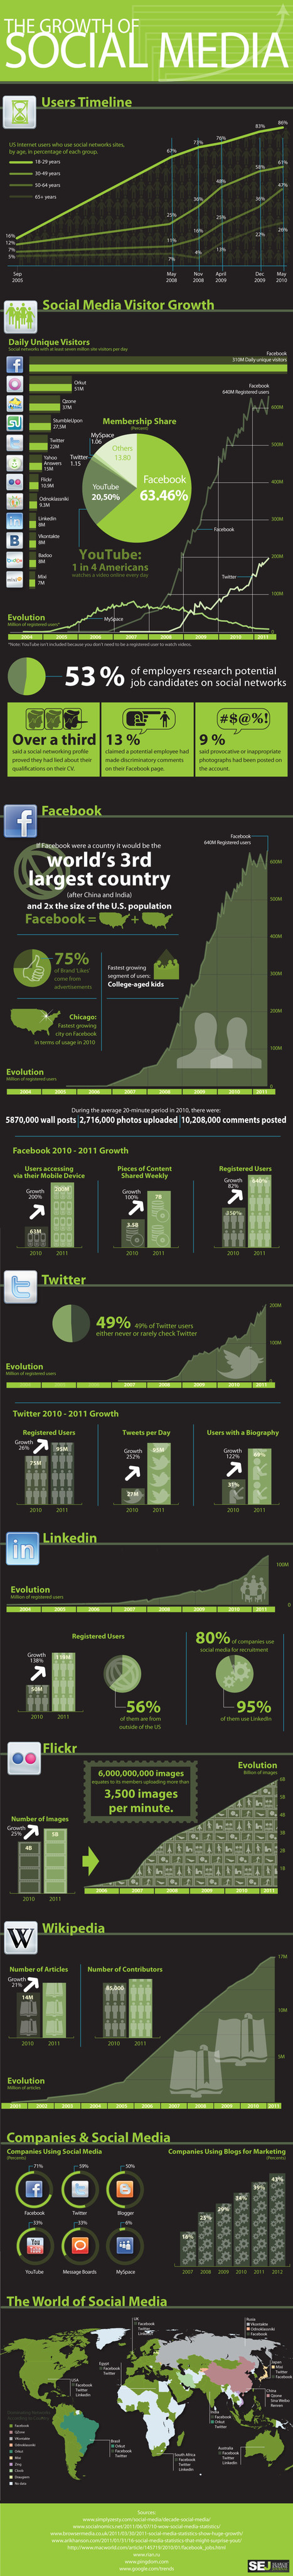 20 Stunning Social Media Statistics Plus Infographic - Jeffbullas's Blog | Business Updates | Scoop.it